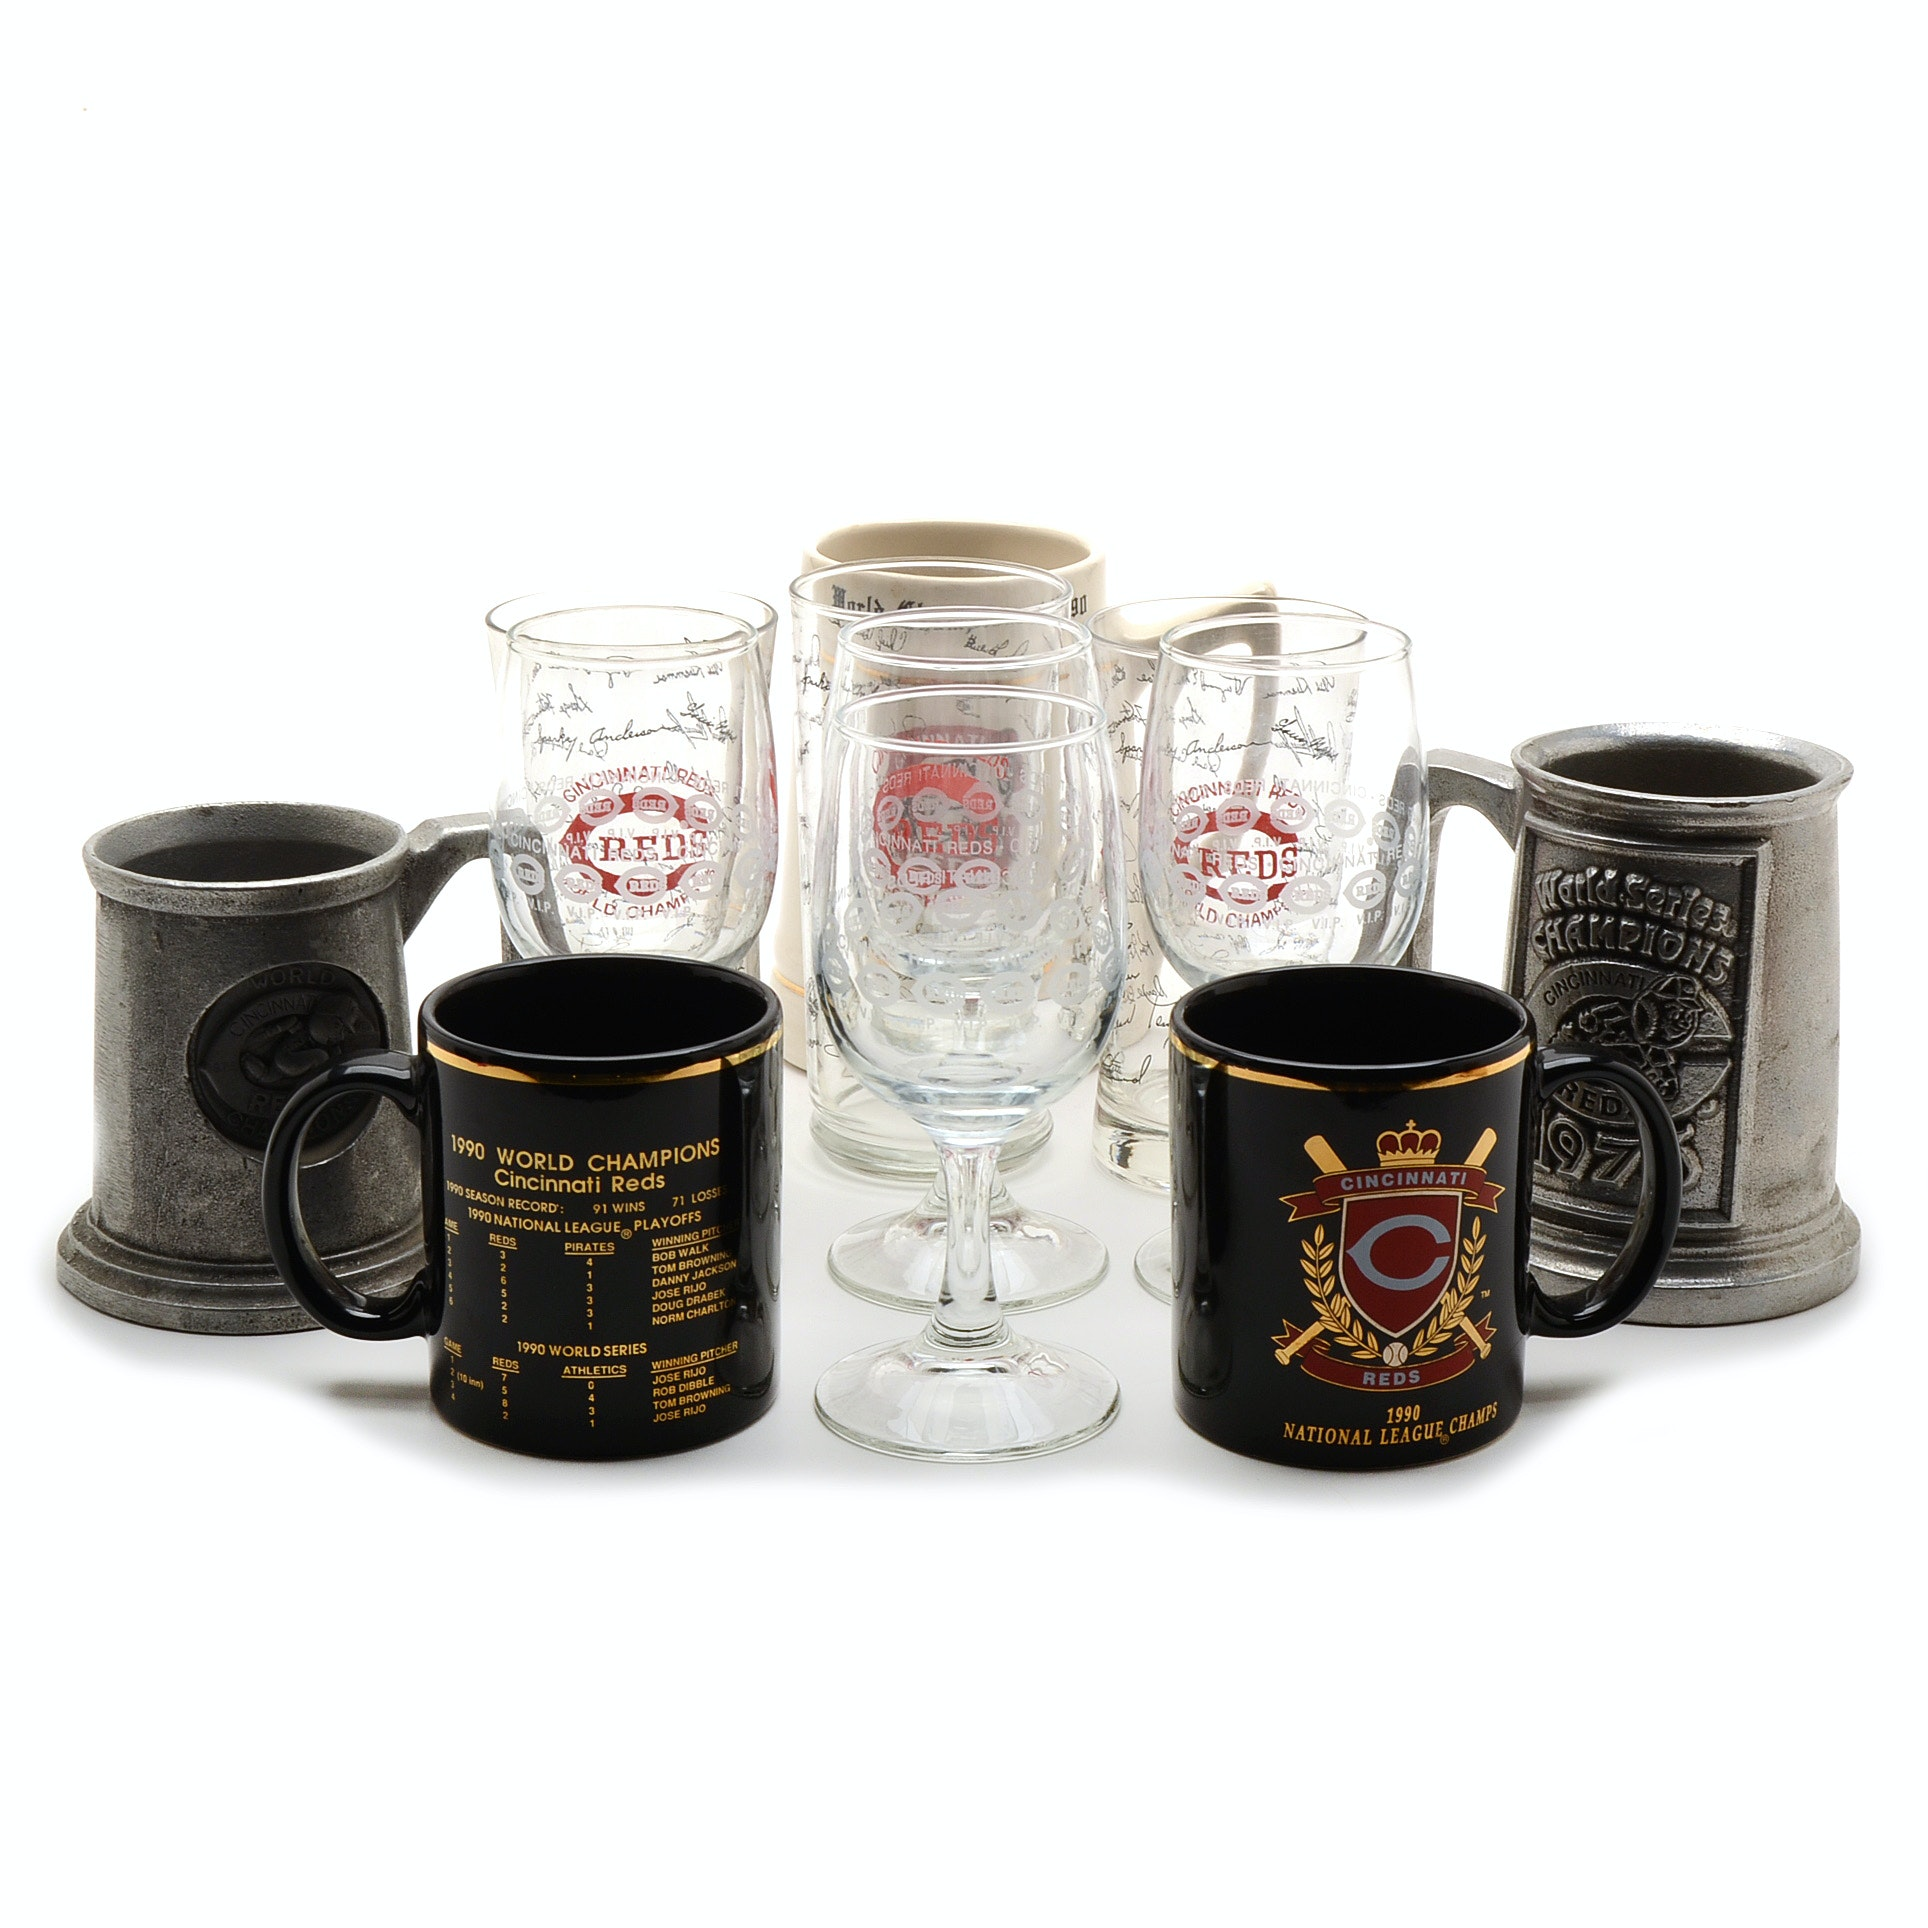 1975/76 and 1990 Reds Glasses and Mugs